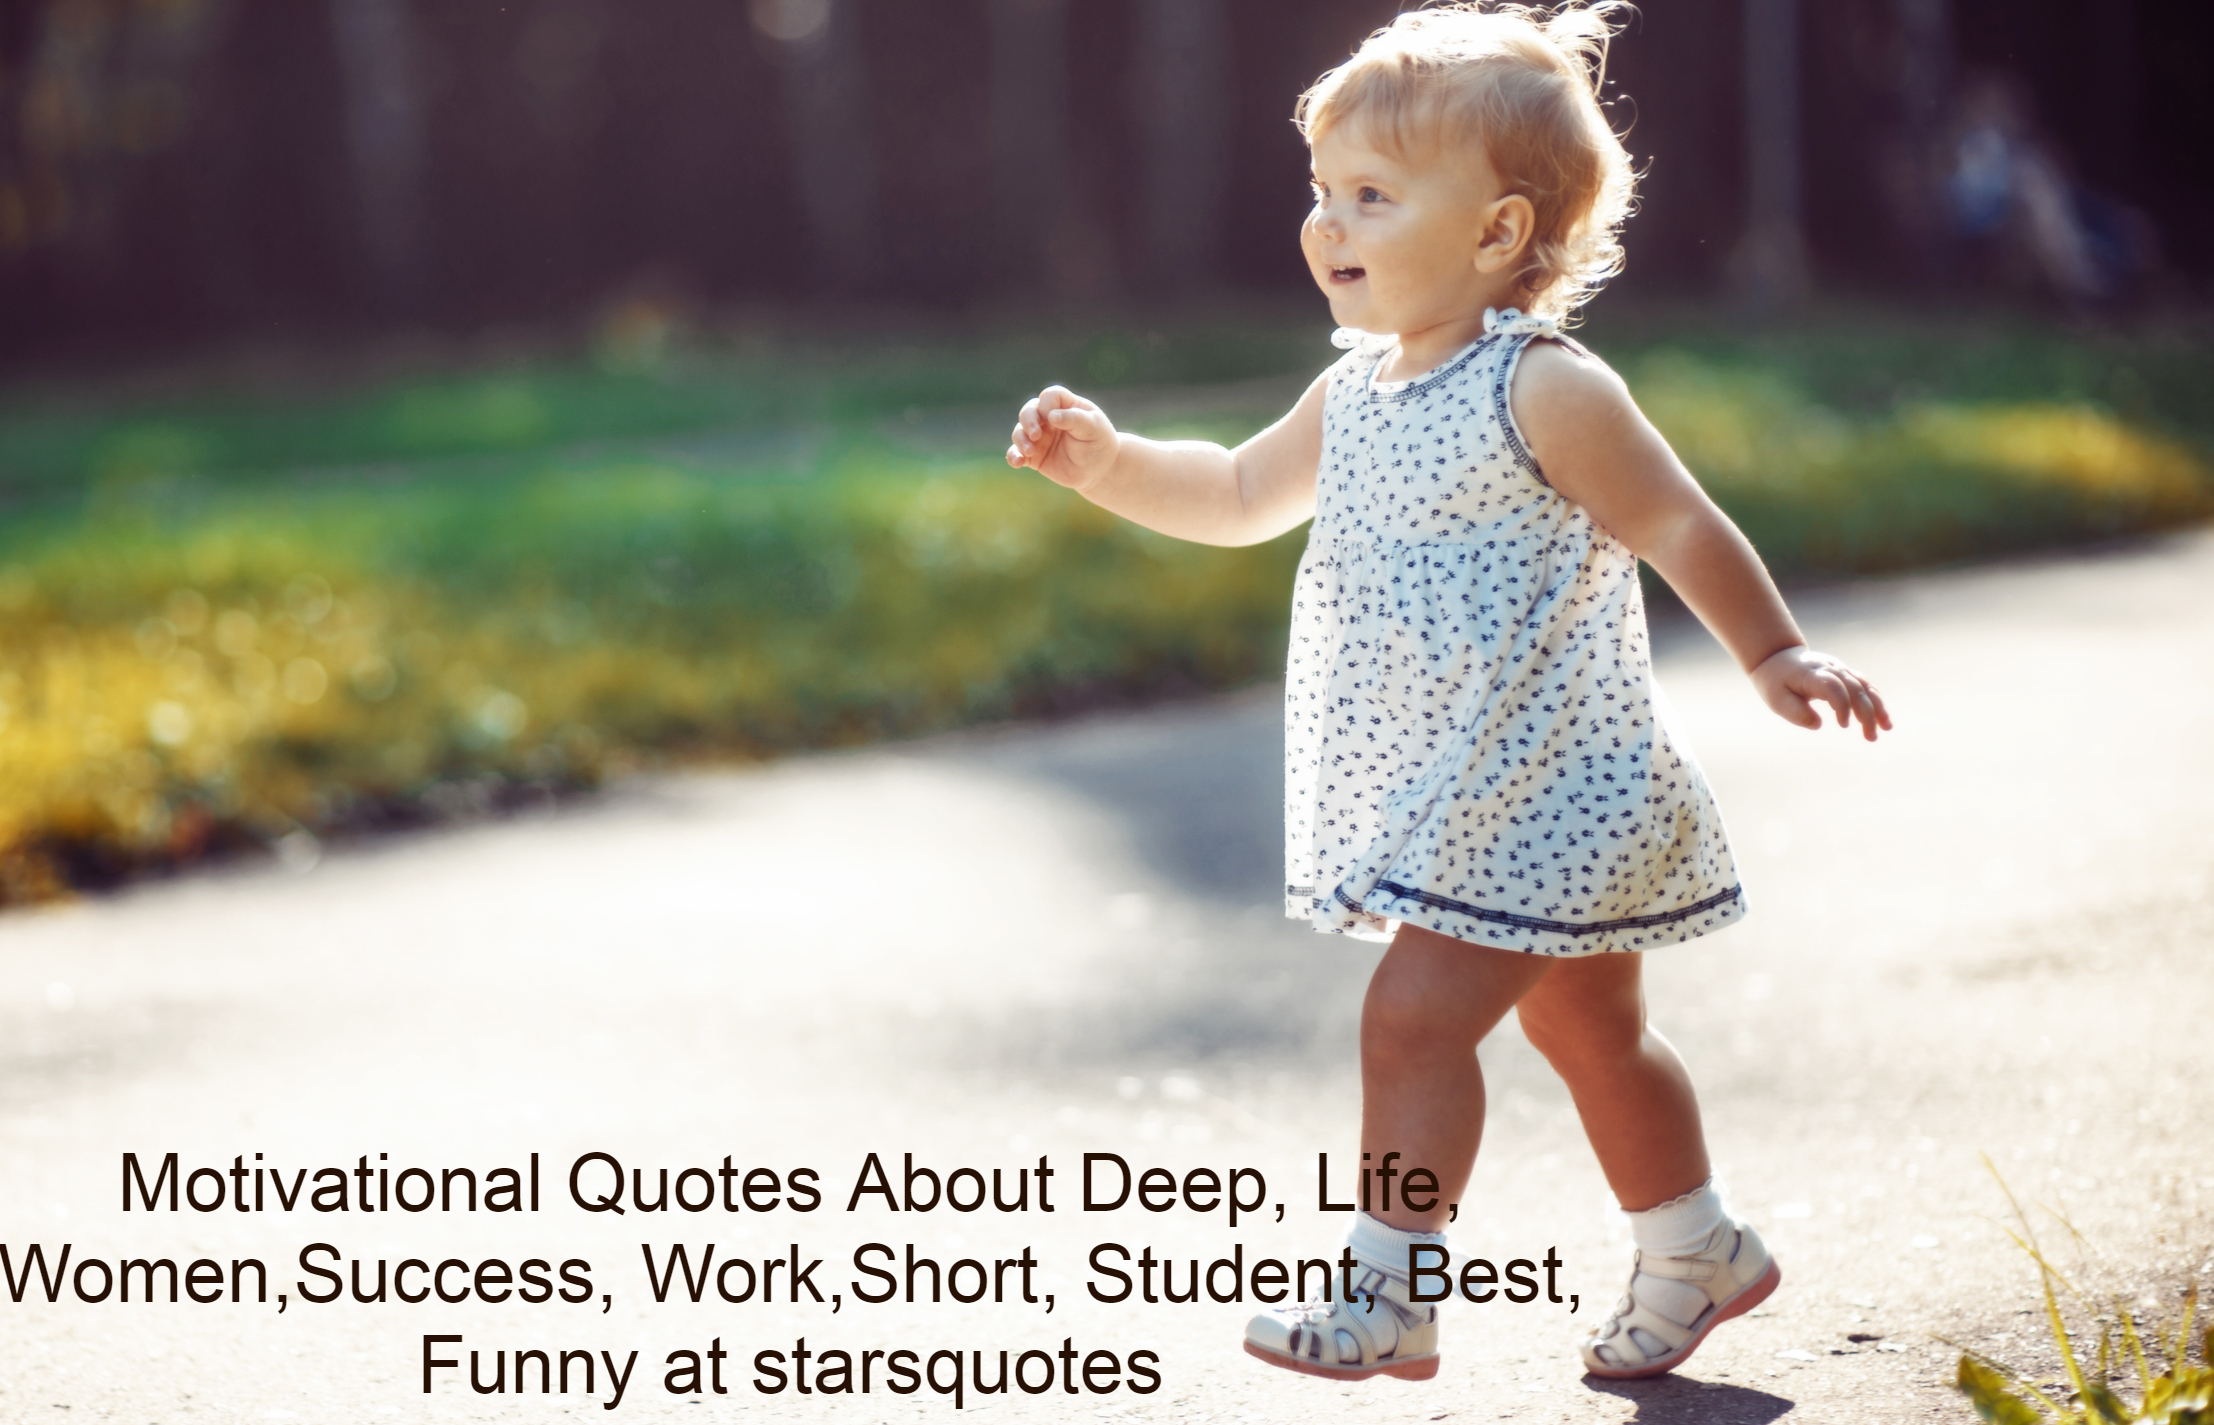 Motivational Quotes About Deep, Life, Women,Success, Work,Short, Student, Best, Funny at starsquotes By Tom Lehrer, Winnie the Pooh, Zig Ziglar, Eric Thomas